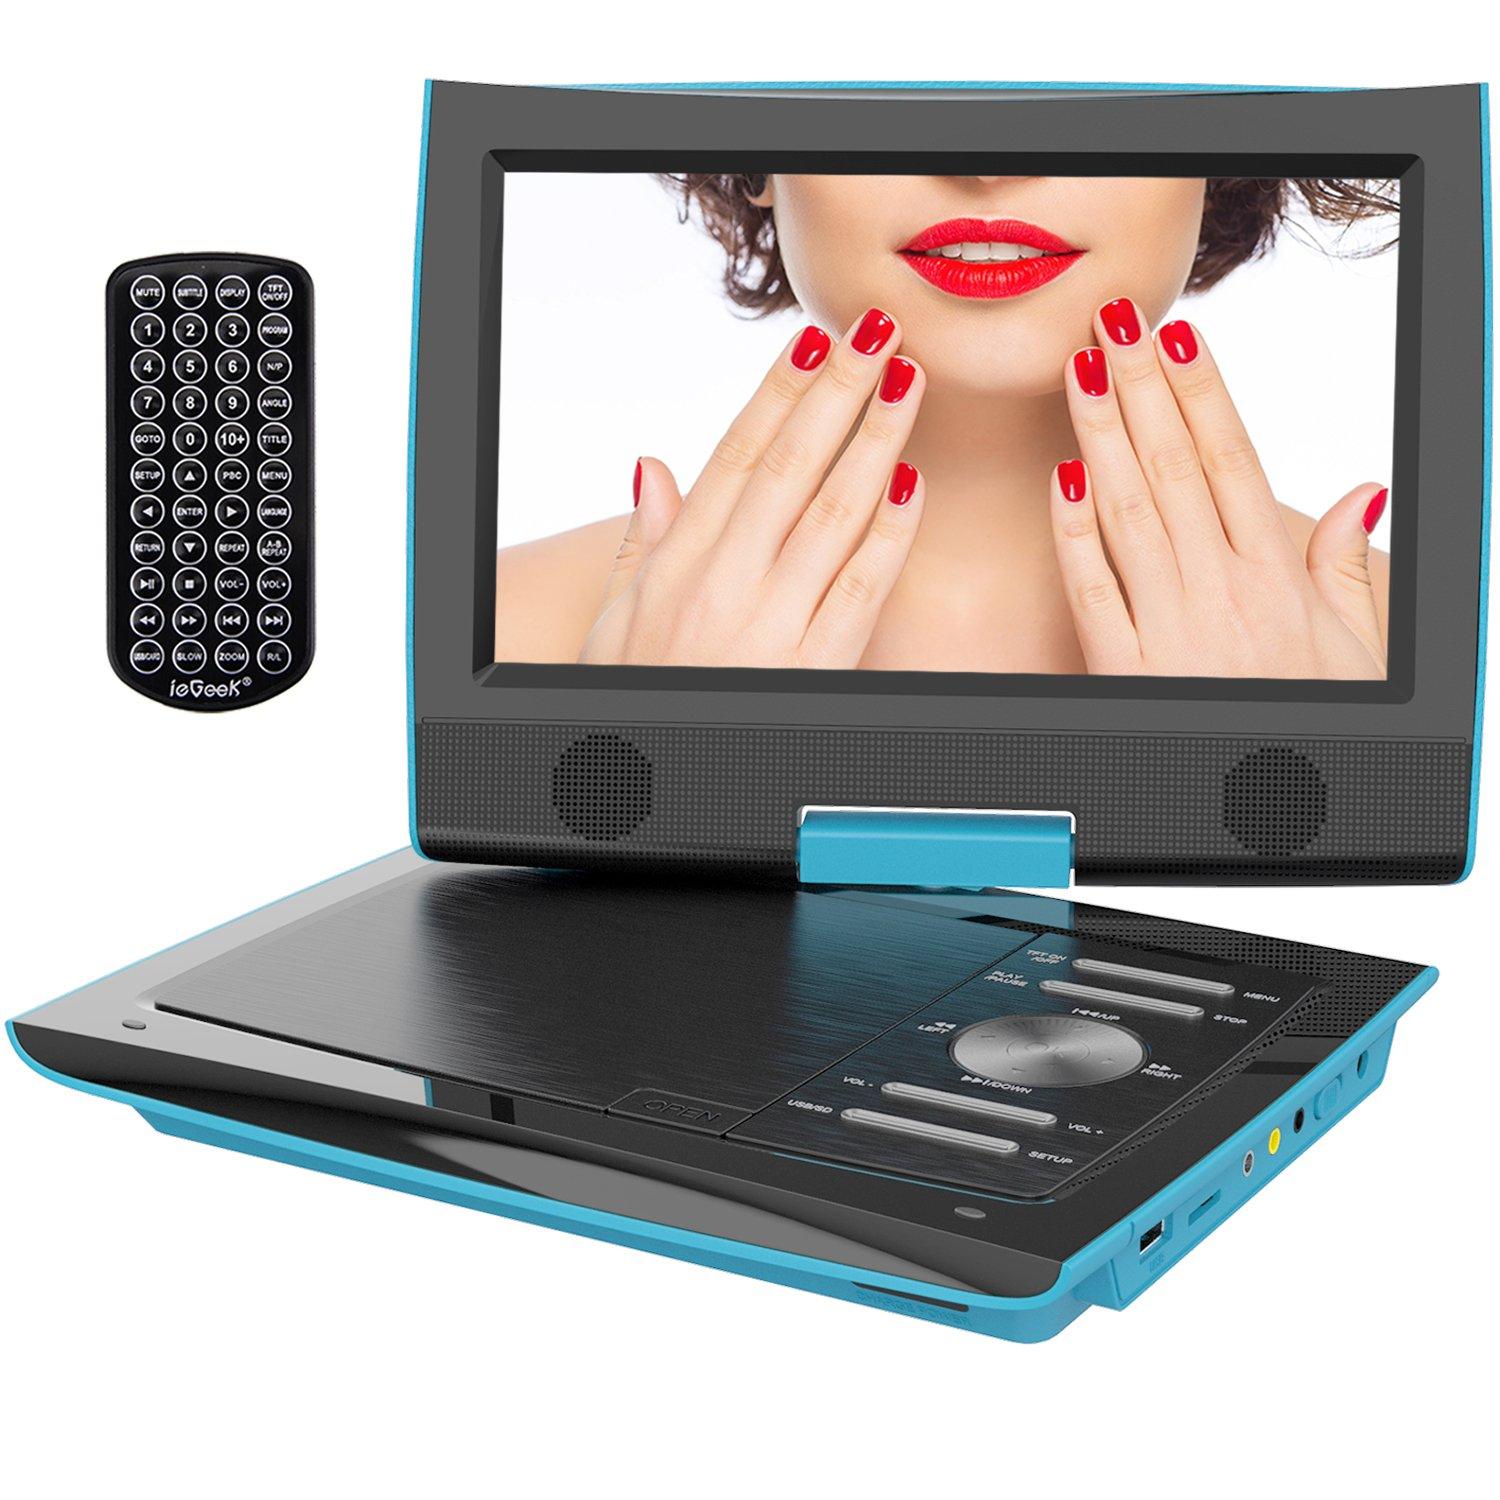 """ieGeek 11"""" Portable DVD Player with 9.5 inch Swivel Higher Brightness Screen, 5 Hours Rechargeable Battery, Dual Earphone Jack, SD Card Slot and USB Port, Blue"""